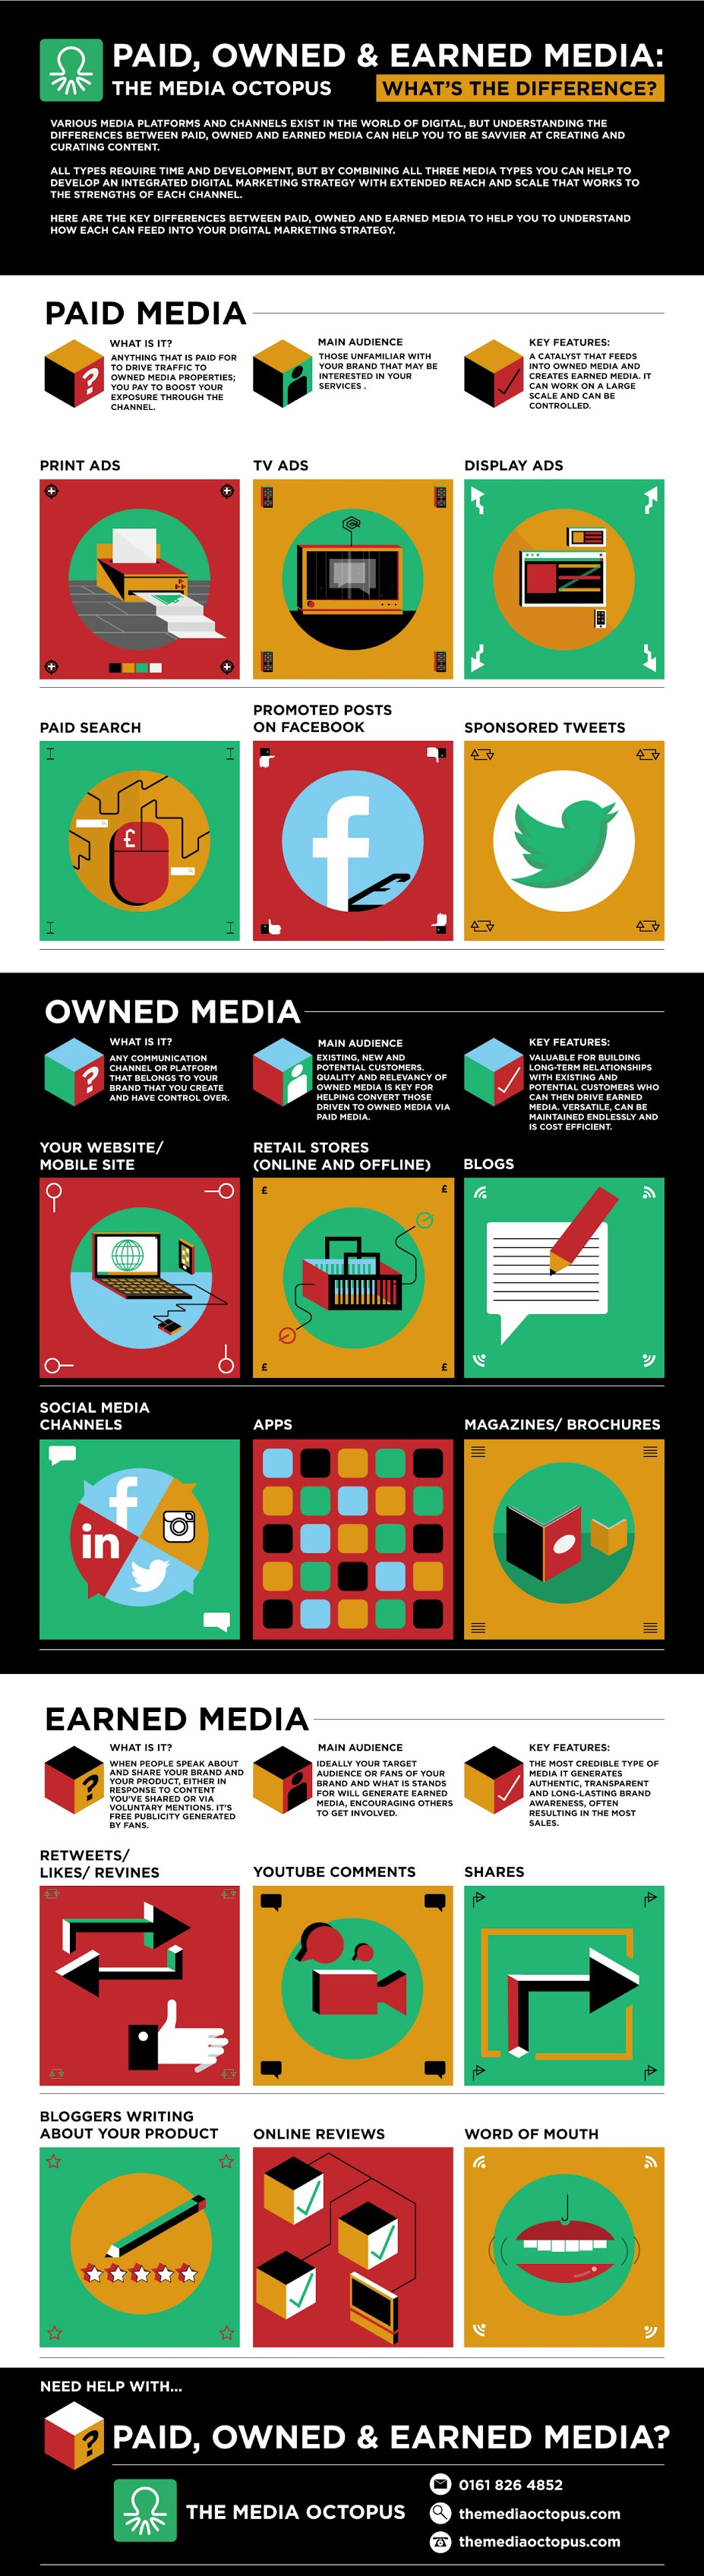 #DigitalMarketing - The Difference Between Paid, Owned And Earned Media - #infographic #internetmarketing #socialmedia #content